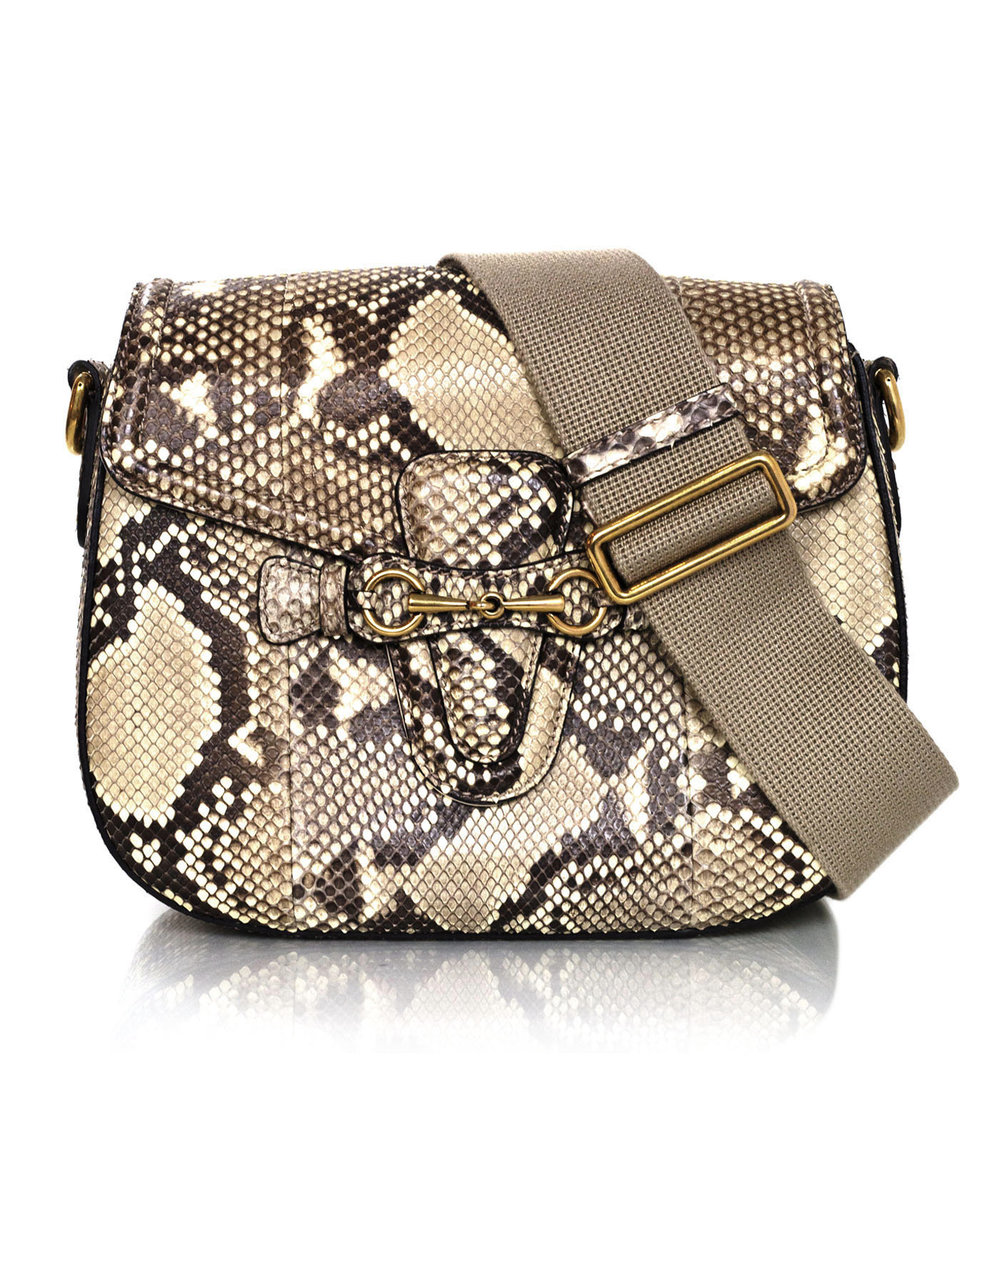 GUCCI python lady web messengr bag extra strap